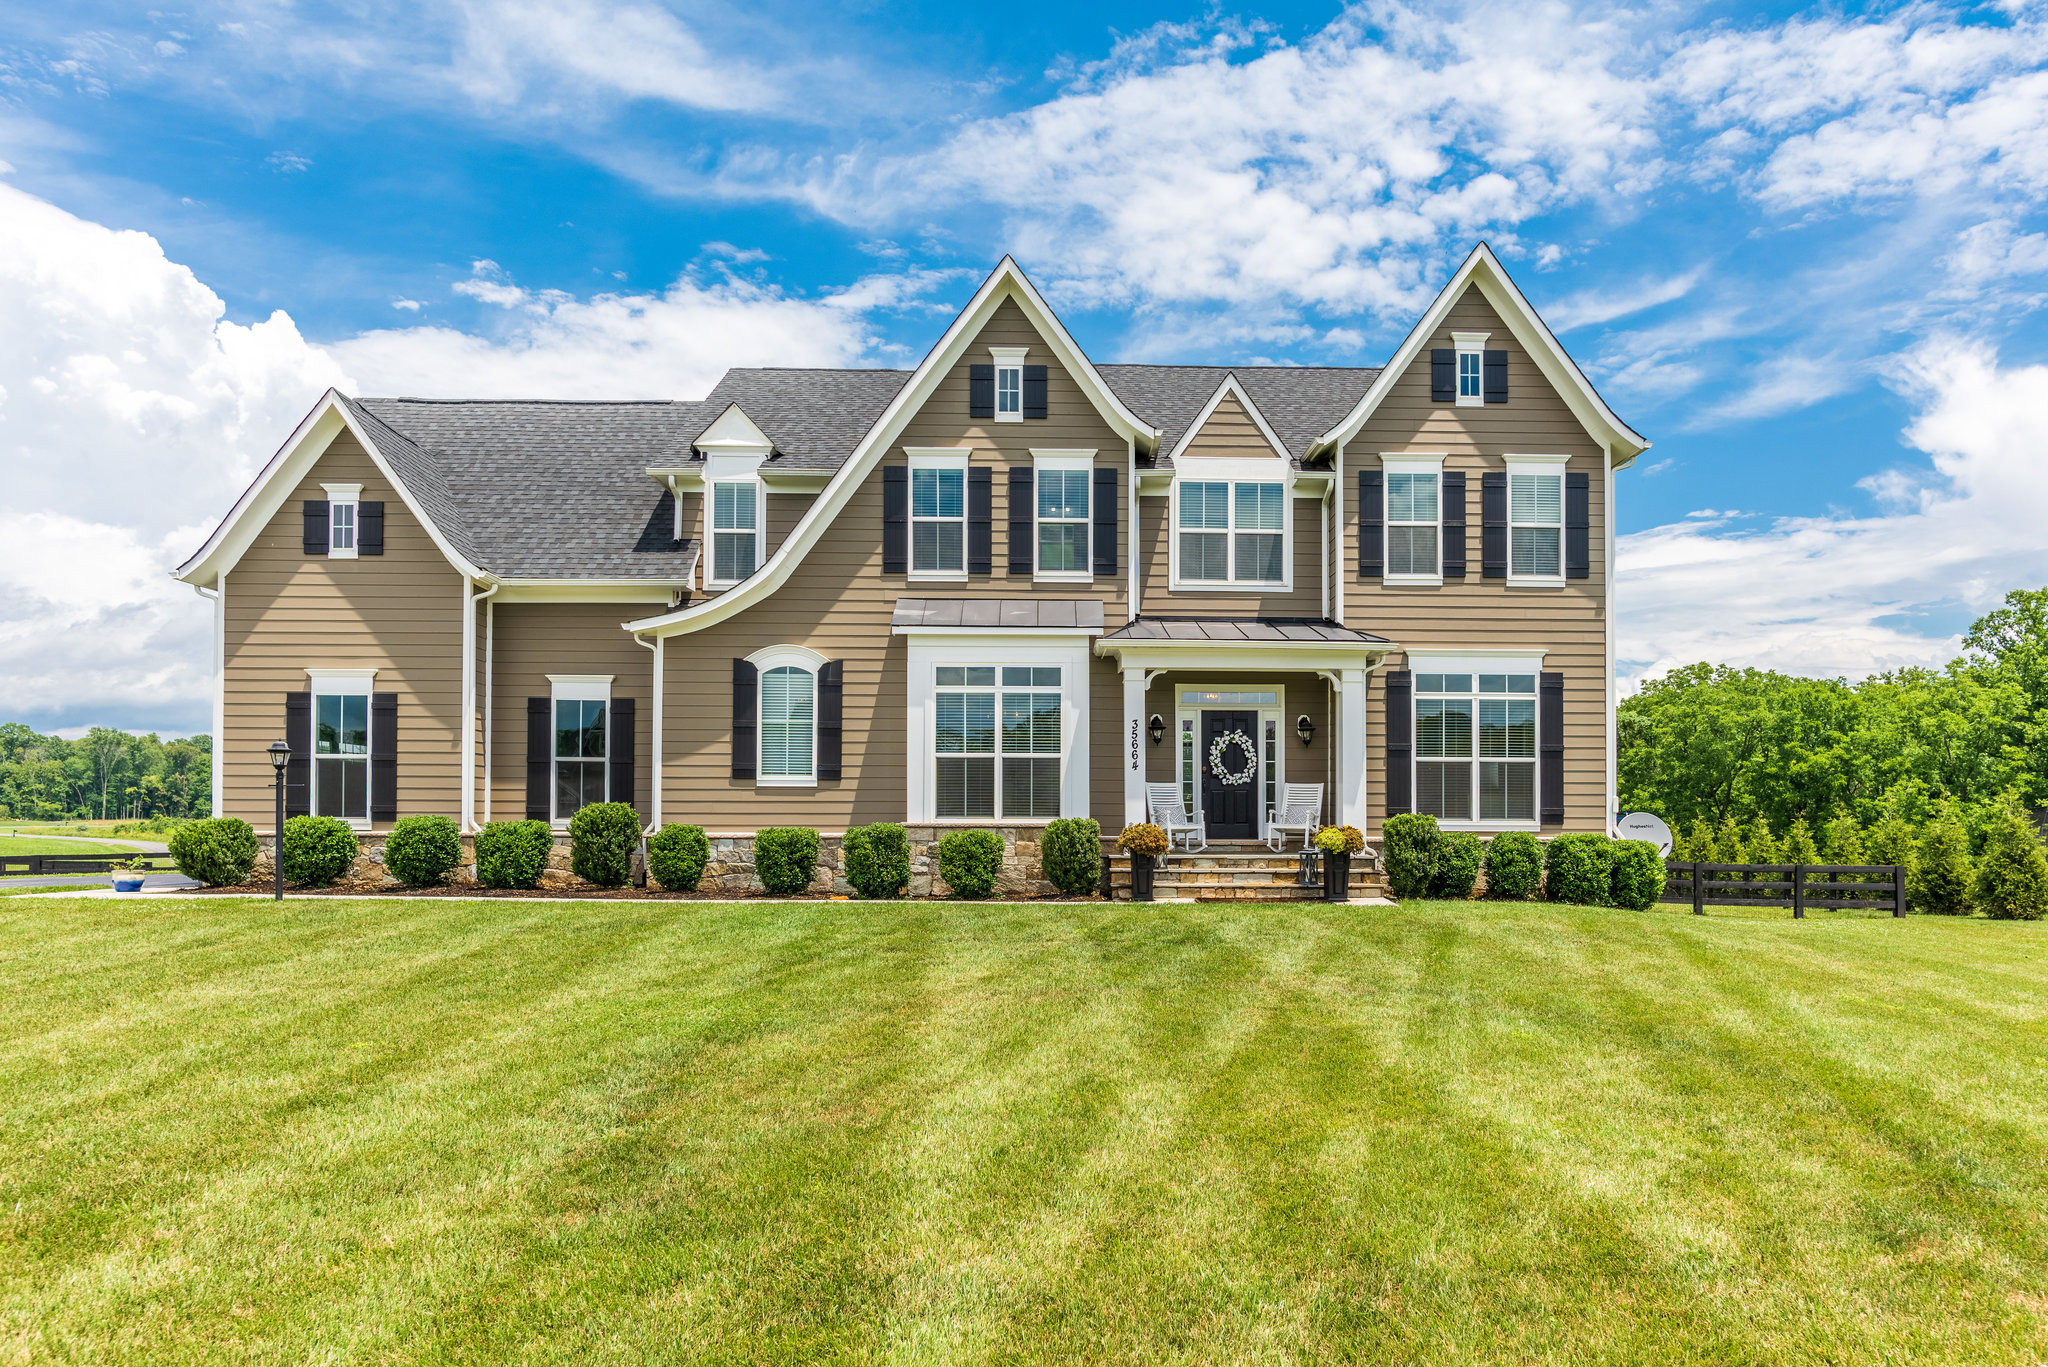 35664 Sweet Branch Ct, Purcellville- For Sale